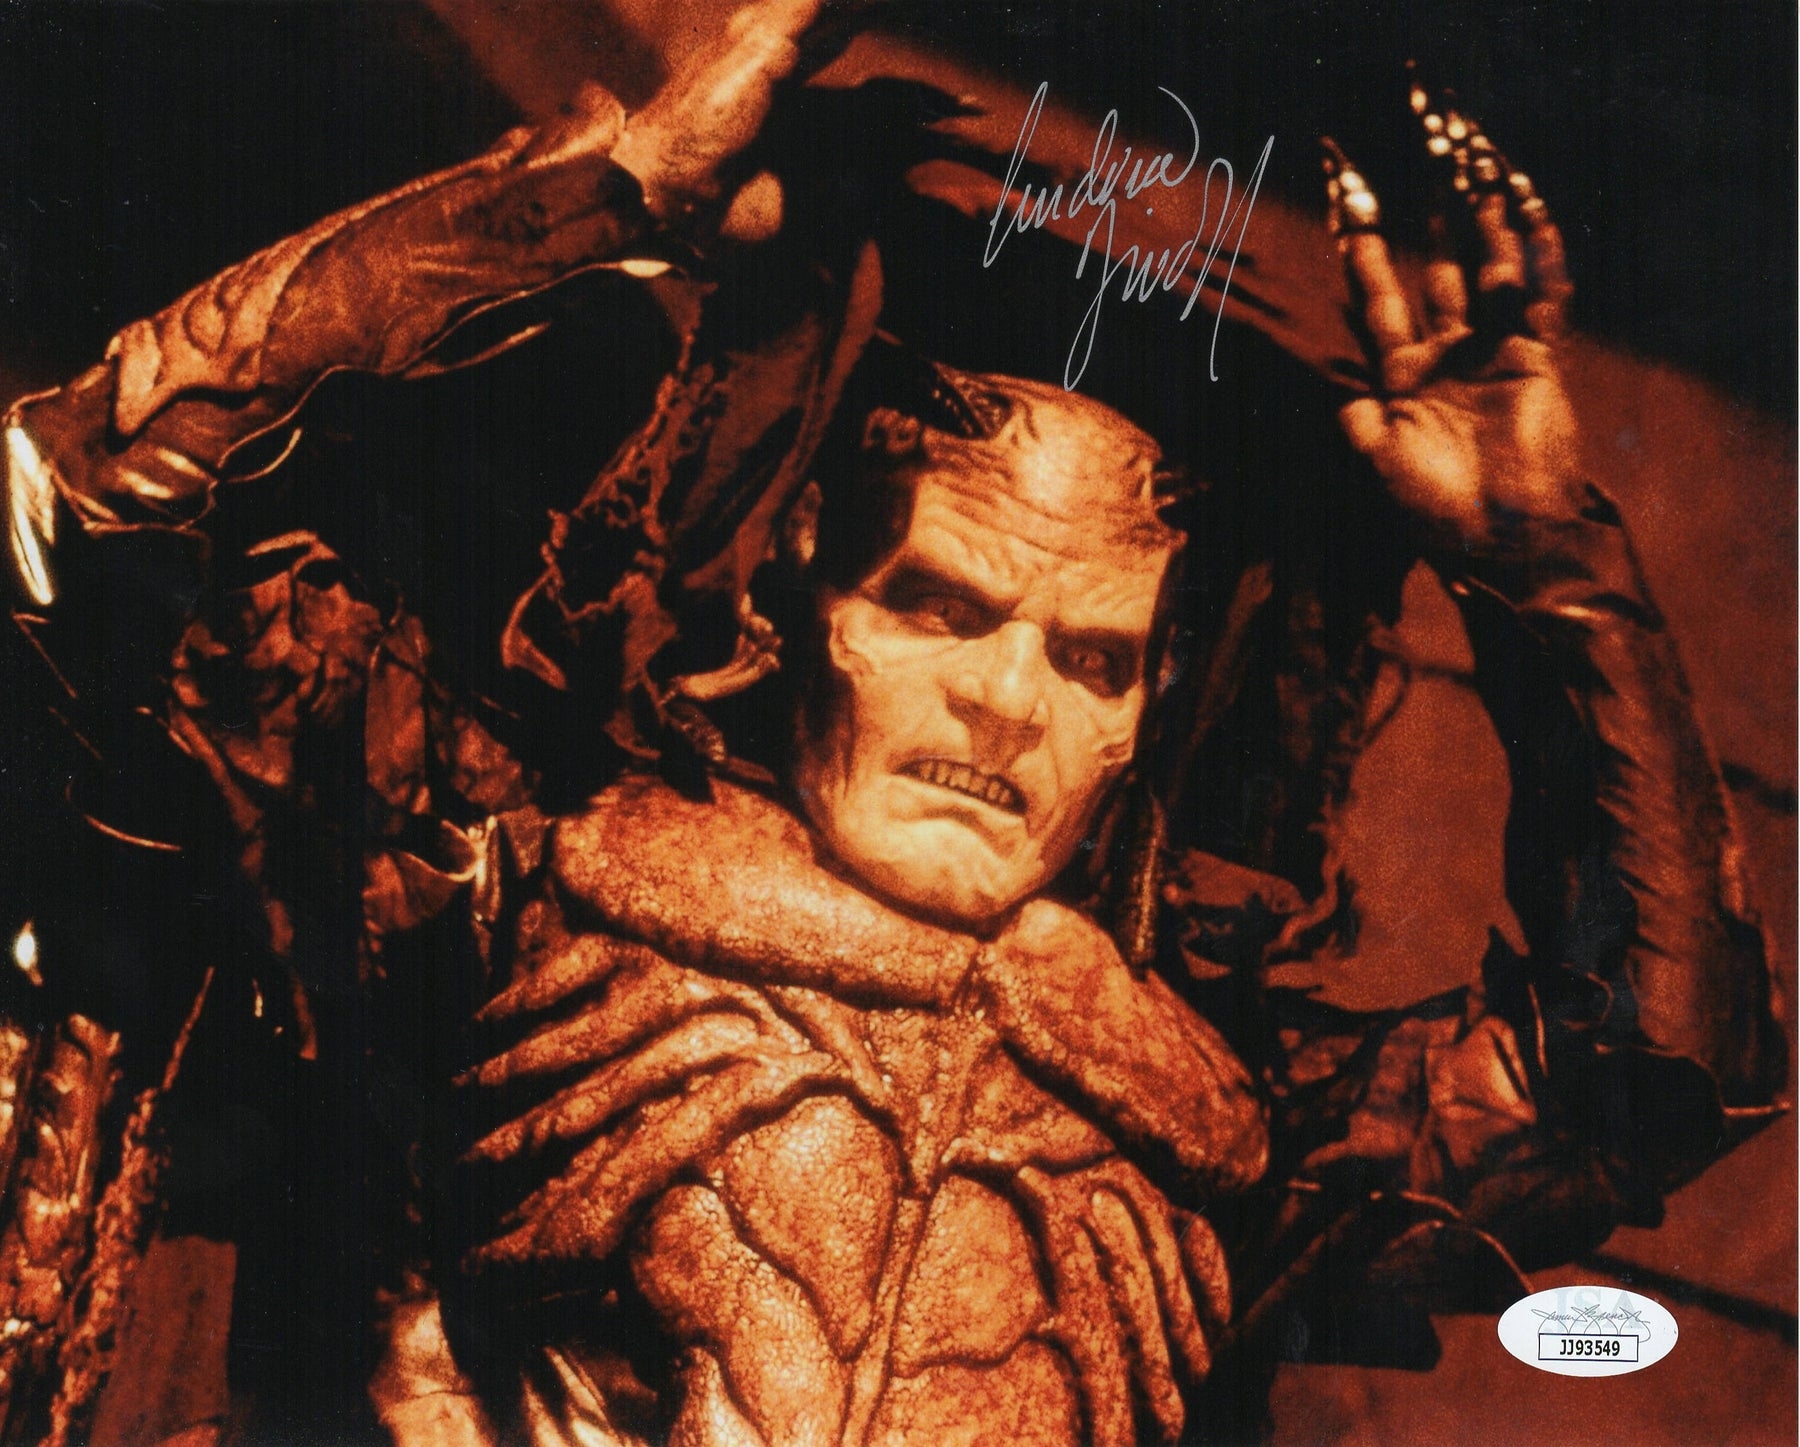 Andrew Divoff Autograph 8x10 Photo Wishmaster Signed JSA CO